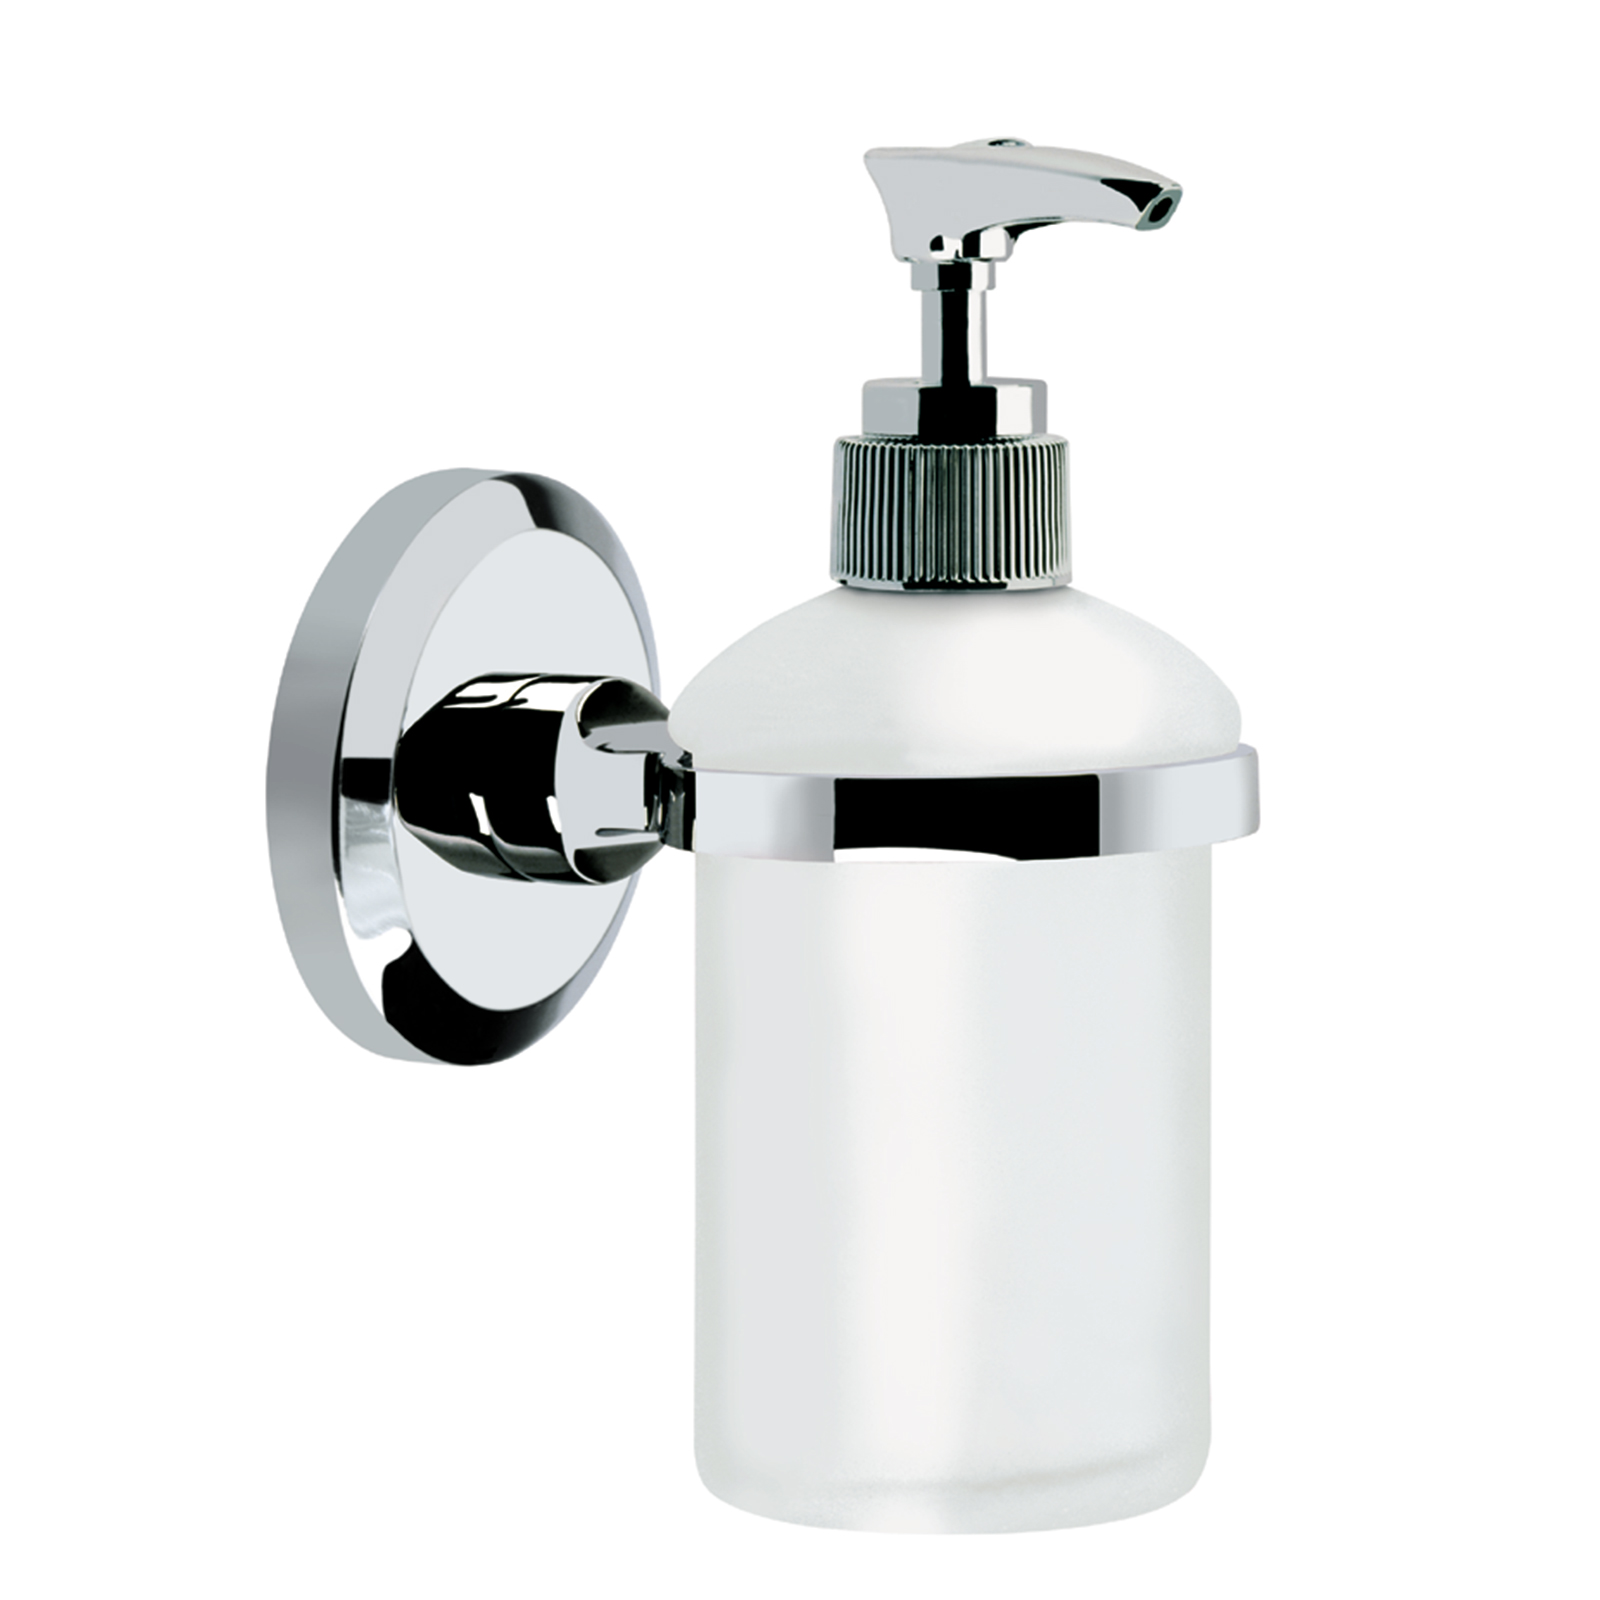 Glass bathroom soap dispenser - Bristan Solo Wall Mounted Frosted Glass Soap Dispenser